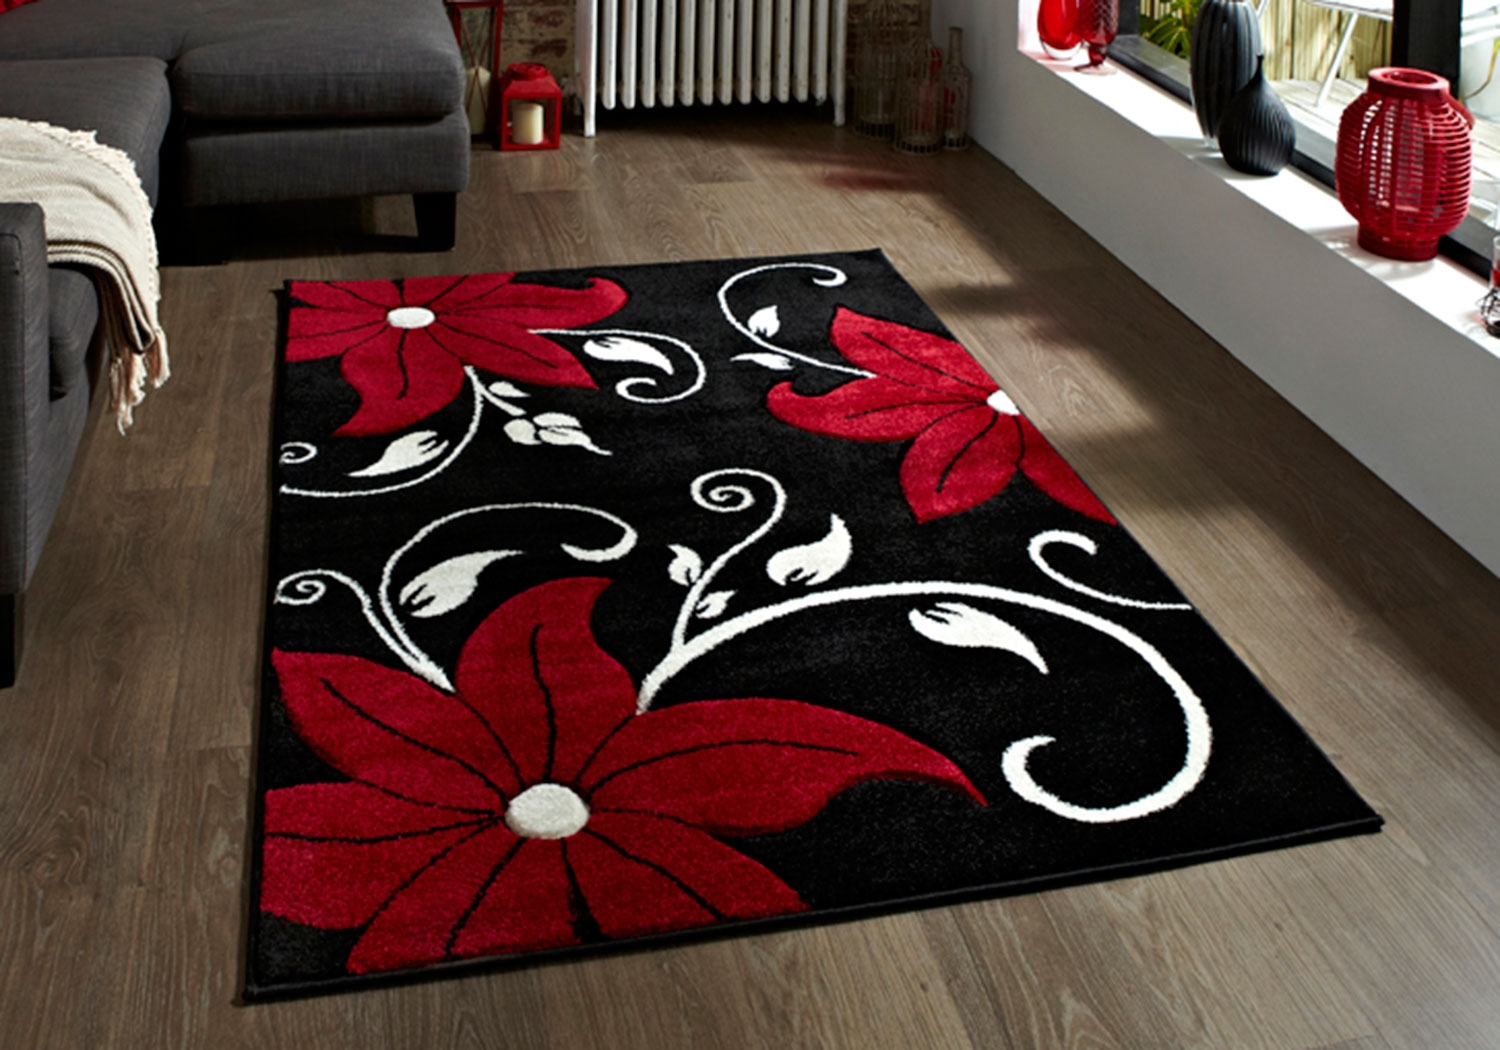 Red And Green Rugs Roselawnlutheran Throughout Small Red Rugs (Image 3 of 15)